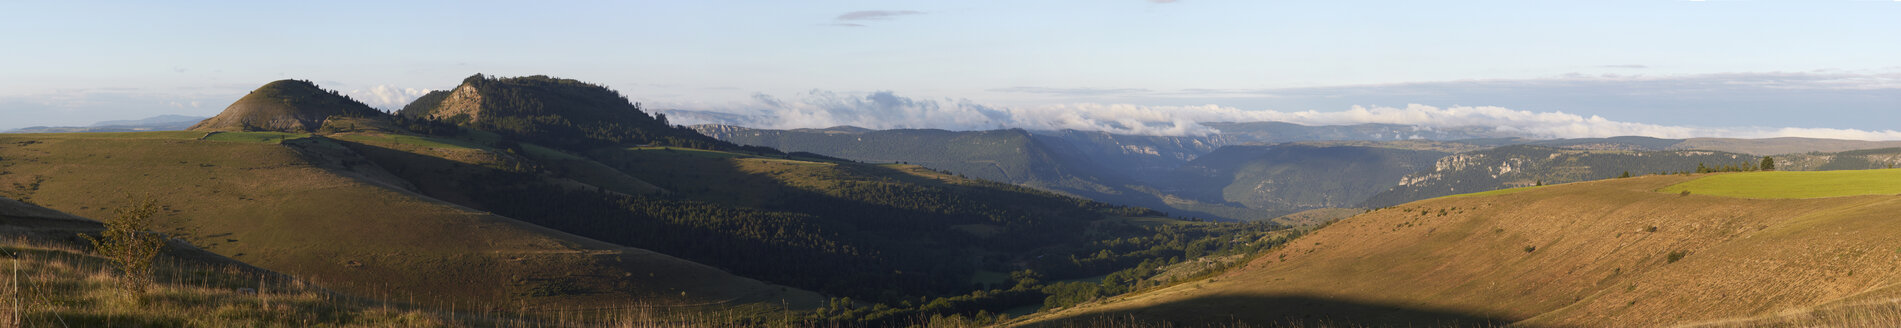 France, Mont Lozere, Cevennes National Park, Panorama - DHL000500